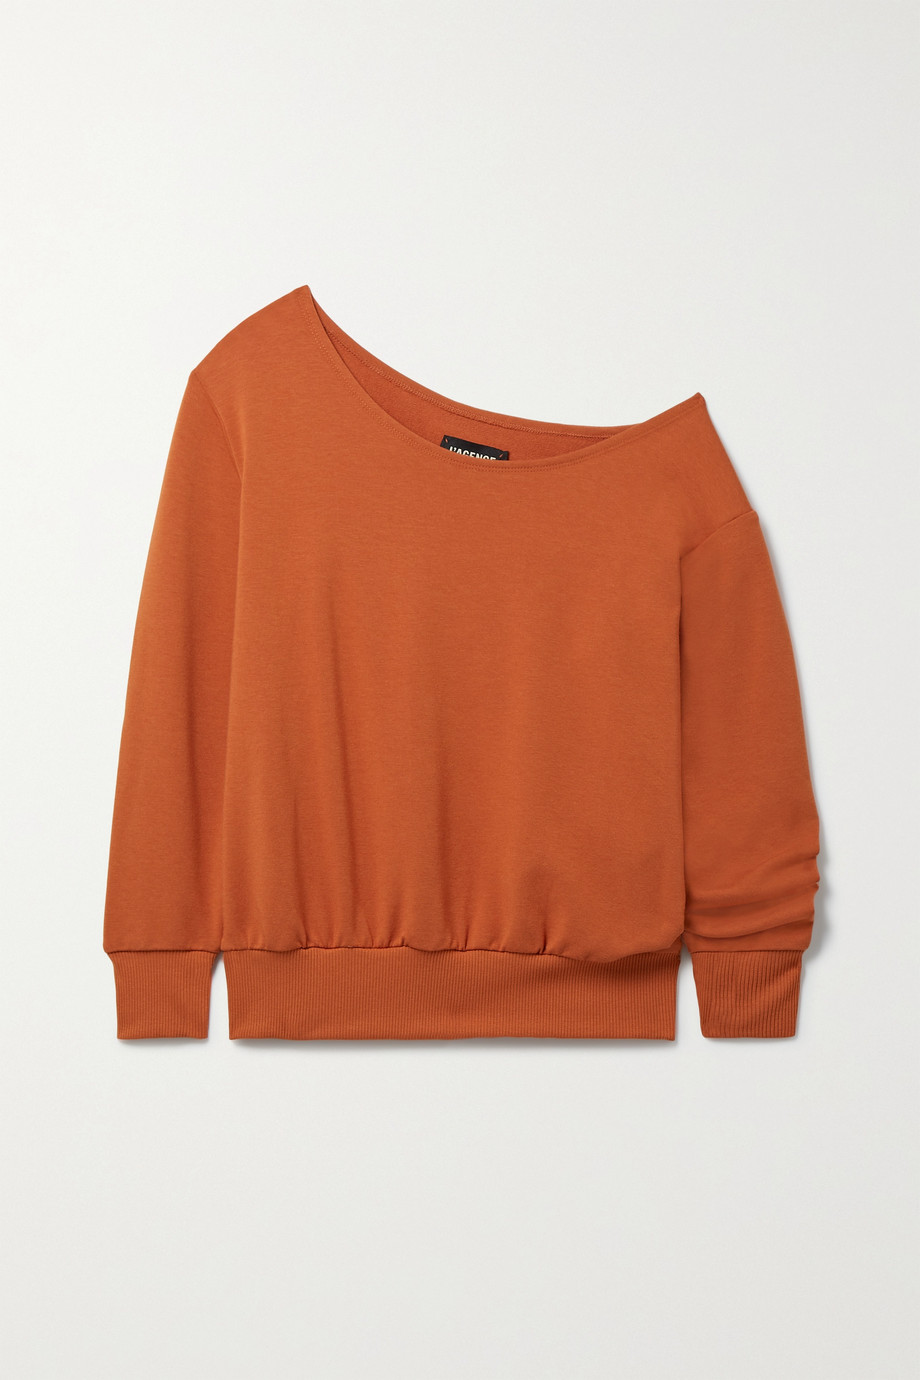 L'Agence Kimora one-shoulder stretch cotton and modal-blend sweatshirt